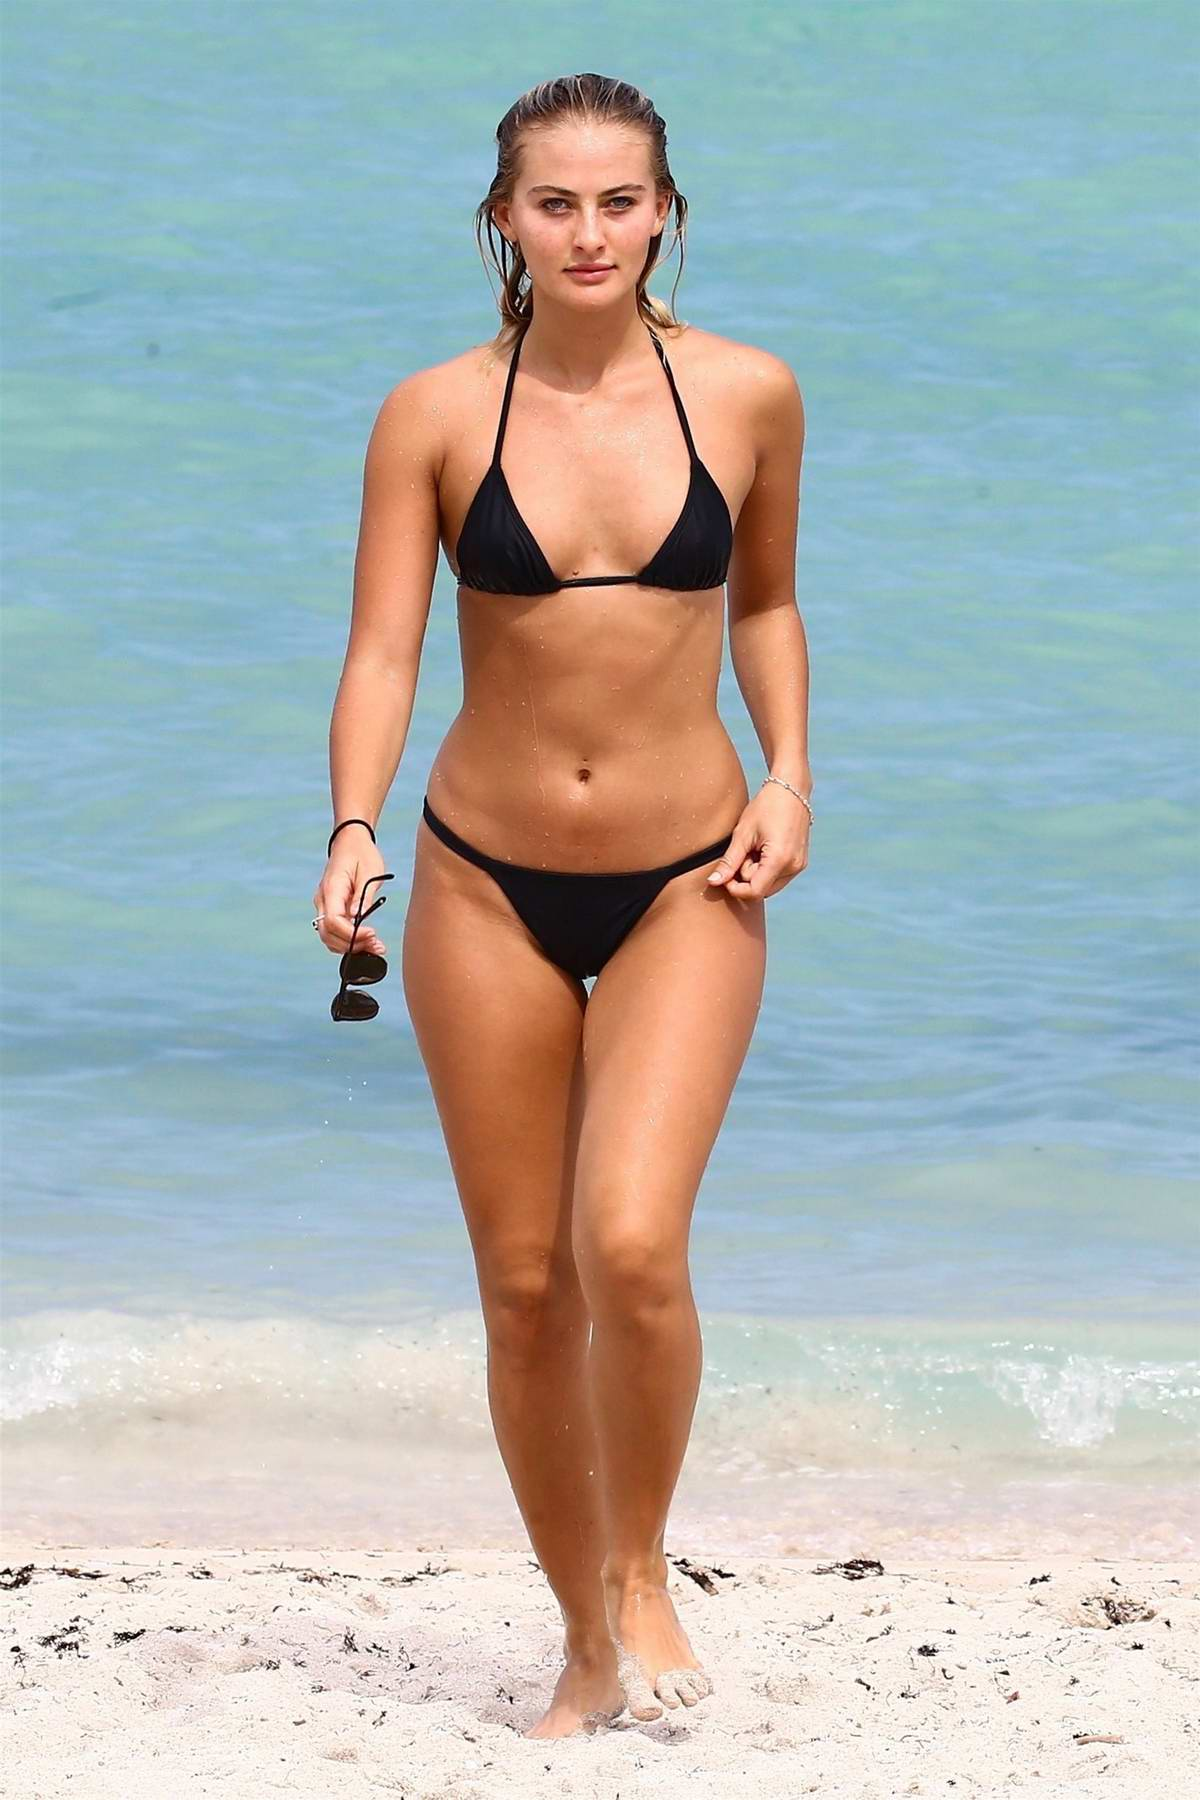 Selena Weber in a Black Bikini enjoying the Ocean in Miami